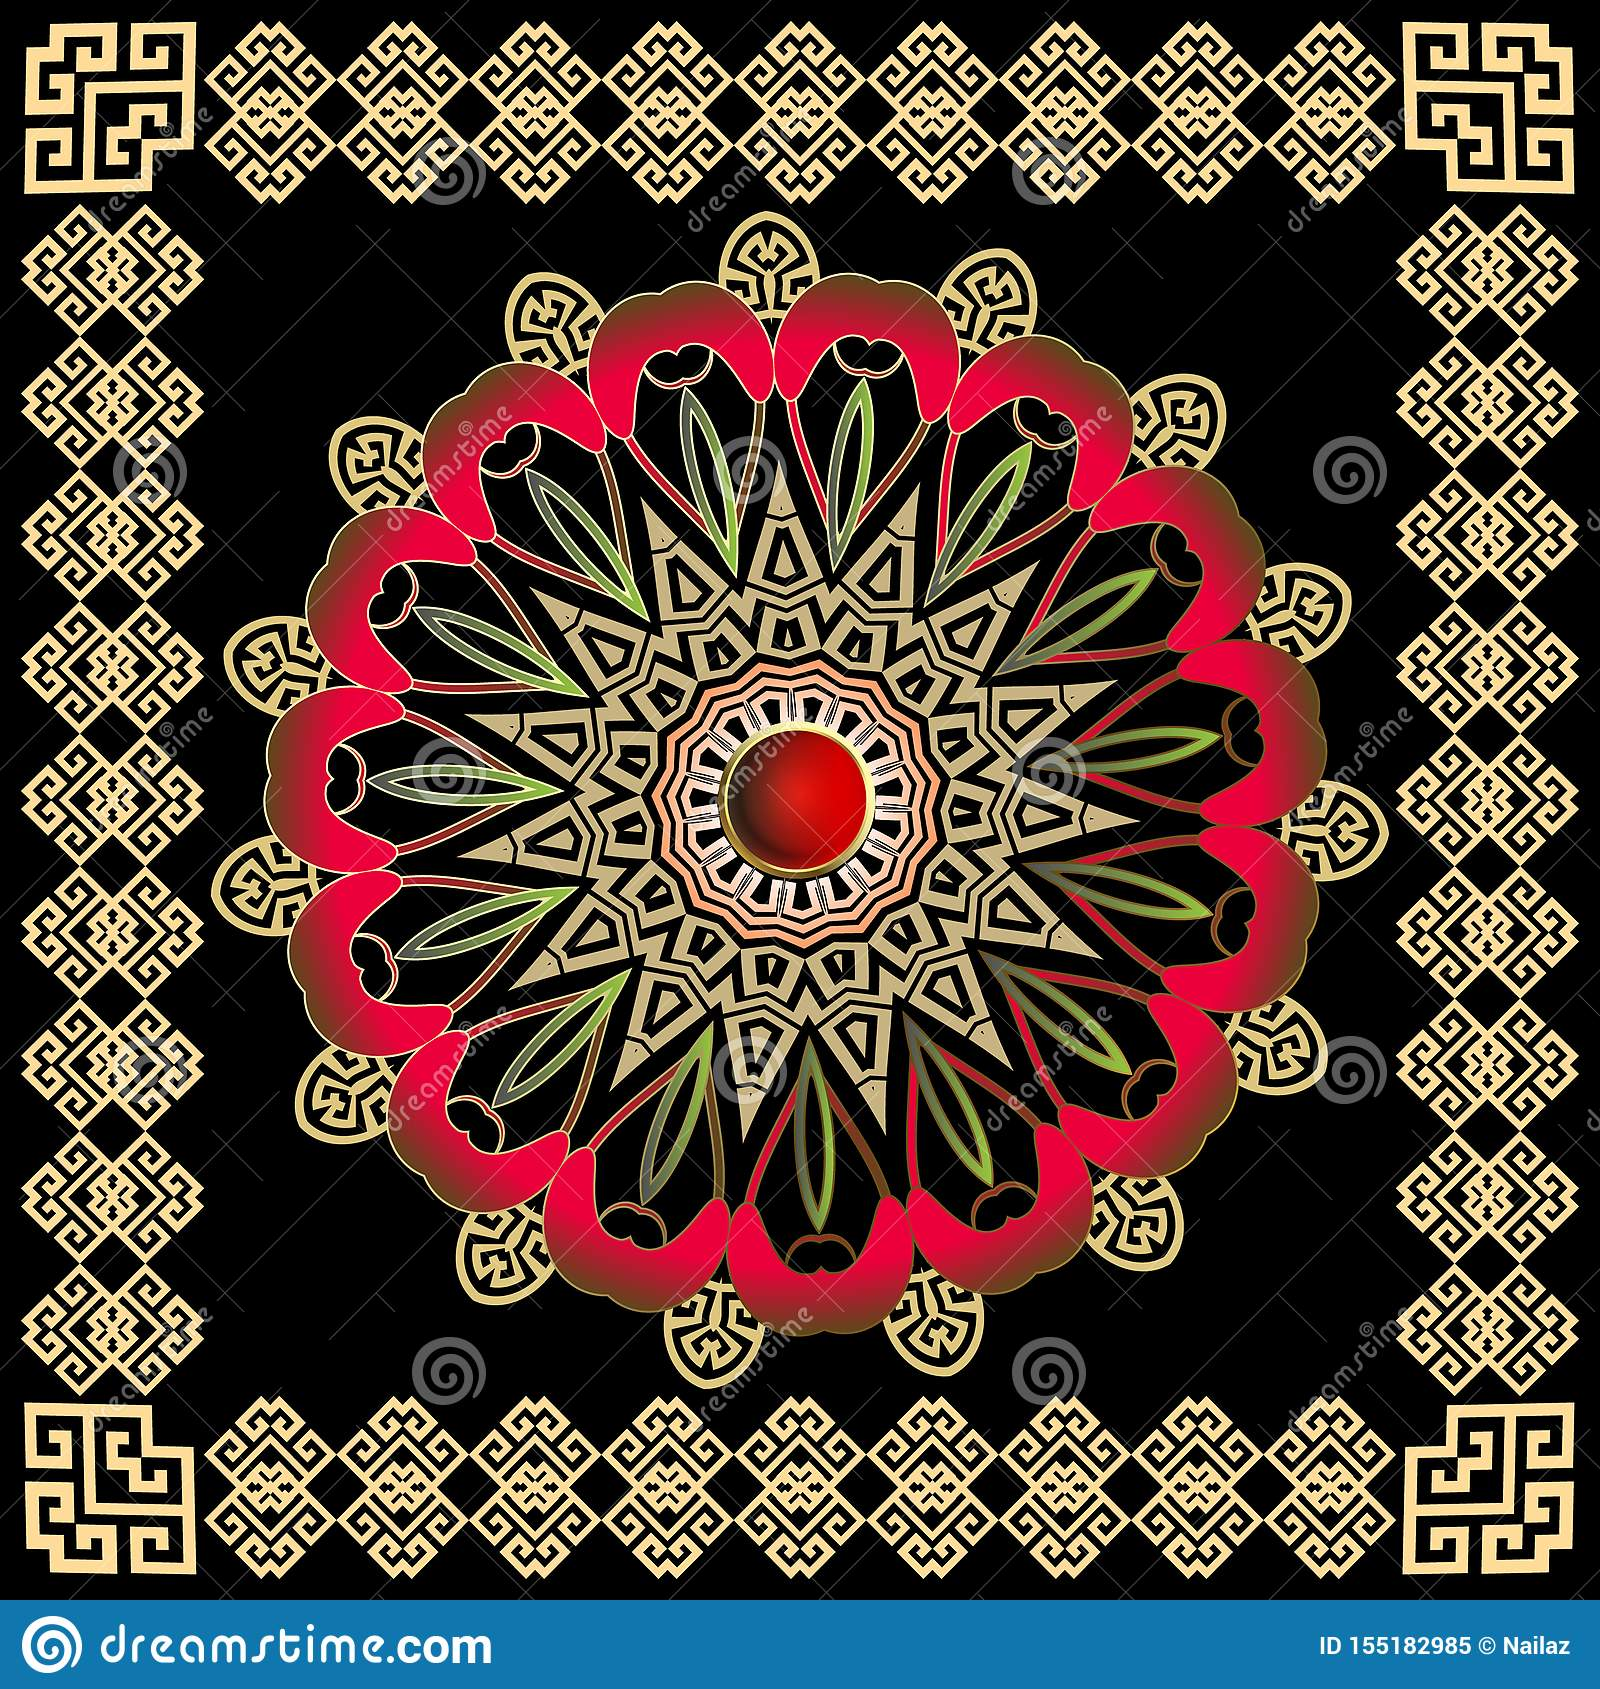 Greek colorful round vector mandala pattern with square frame. Tribal ethnic style decorative background.